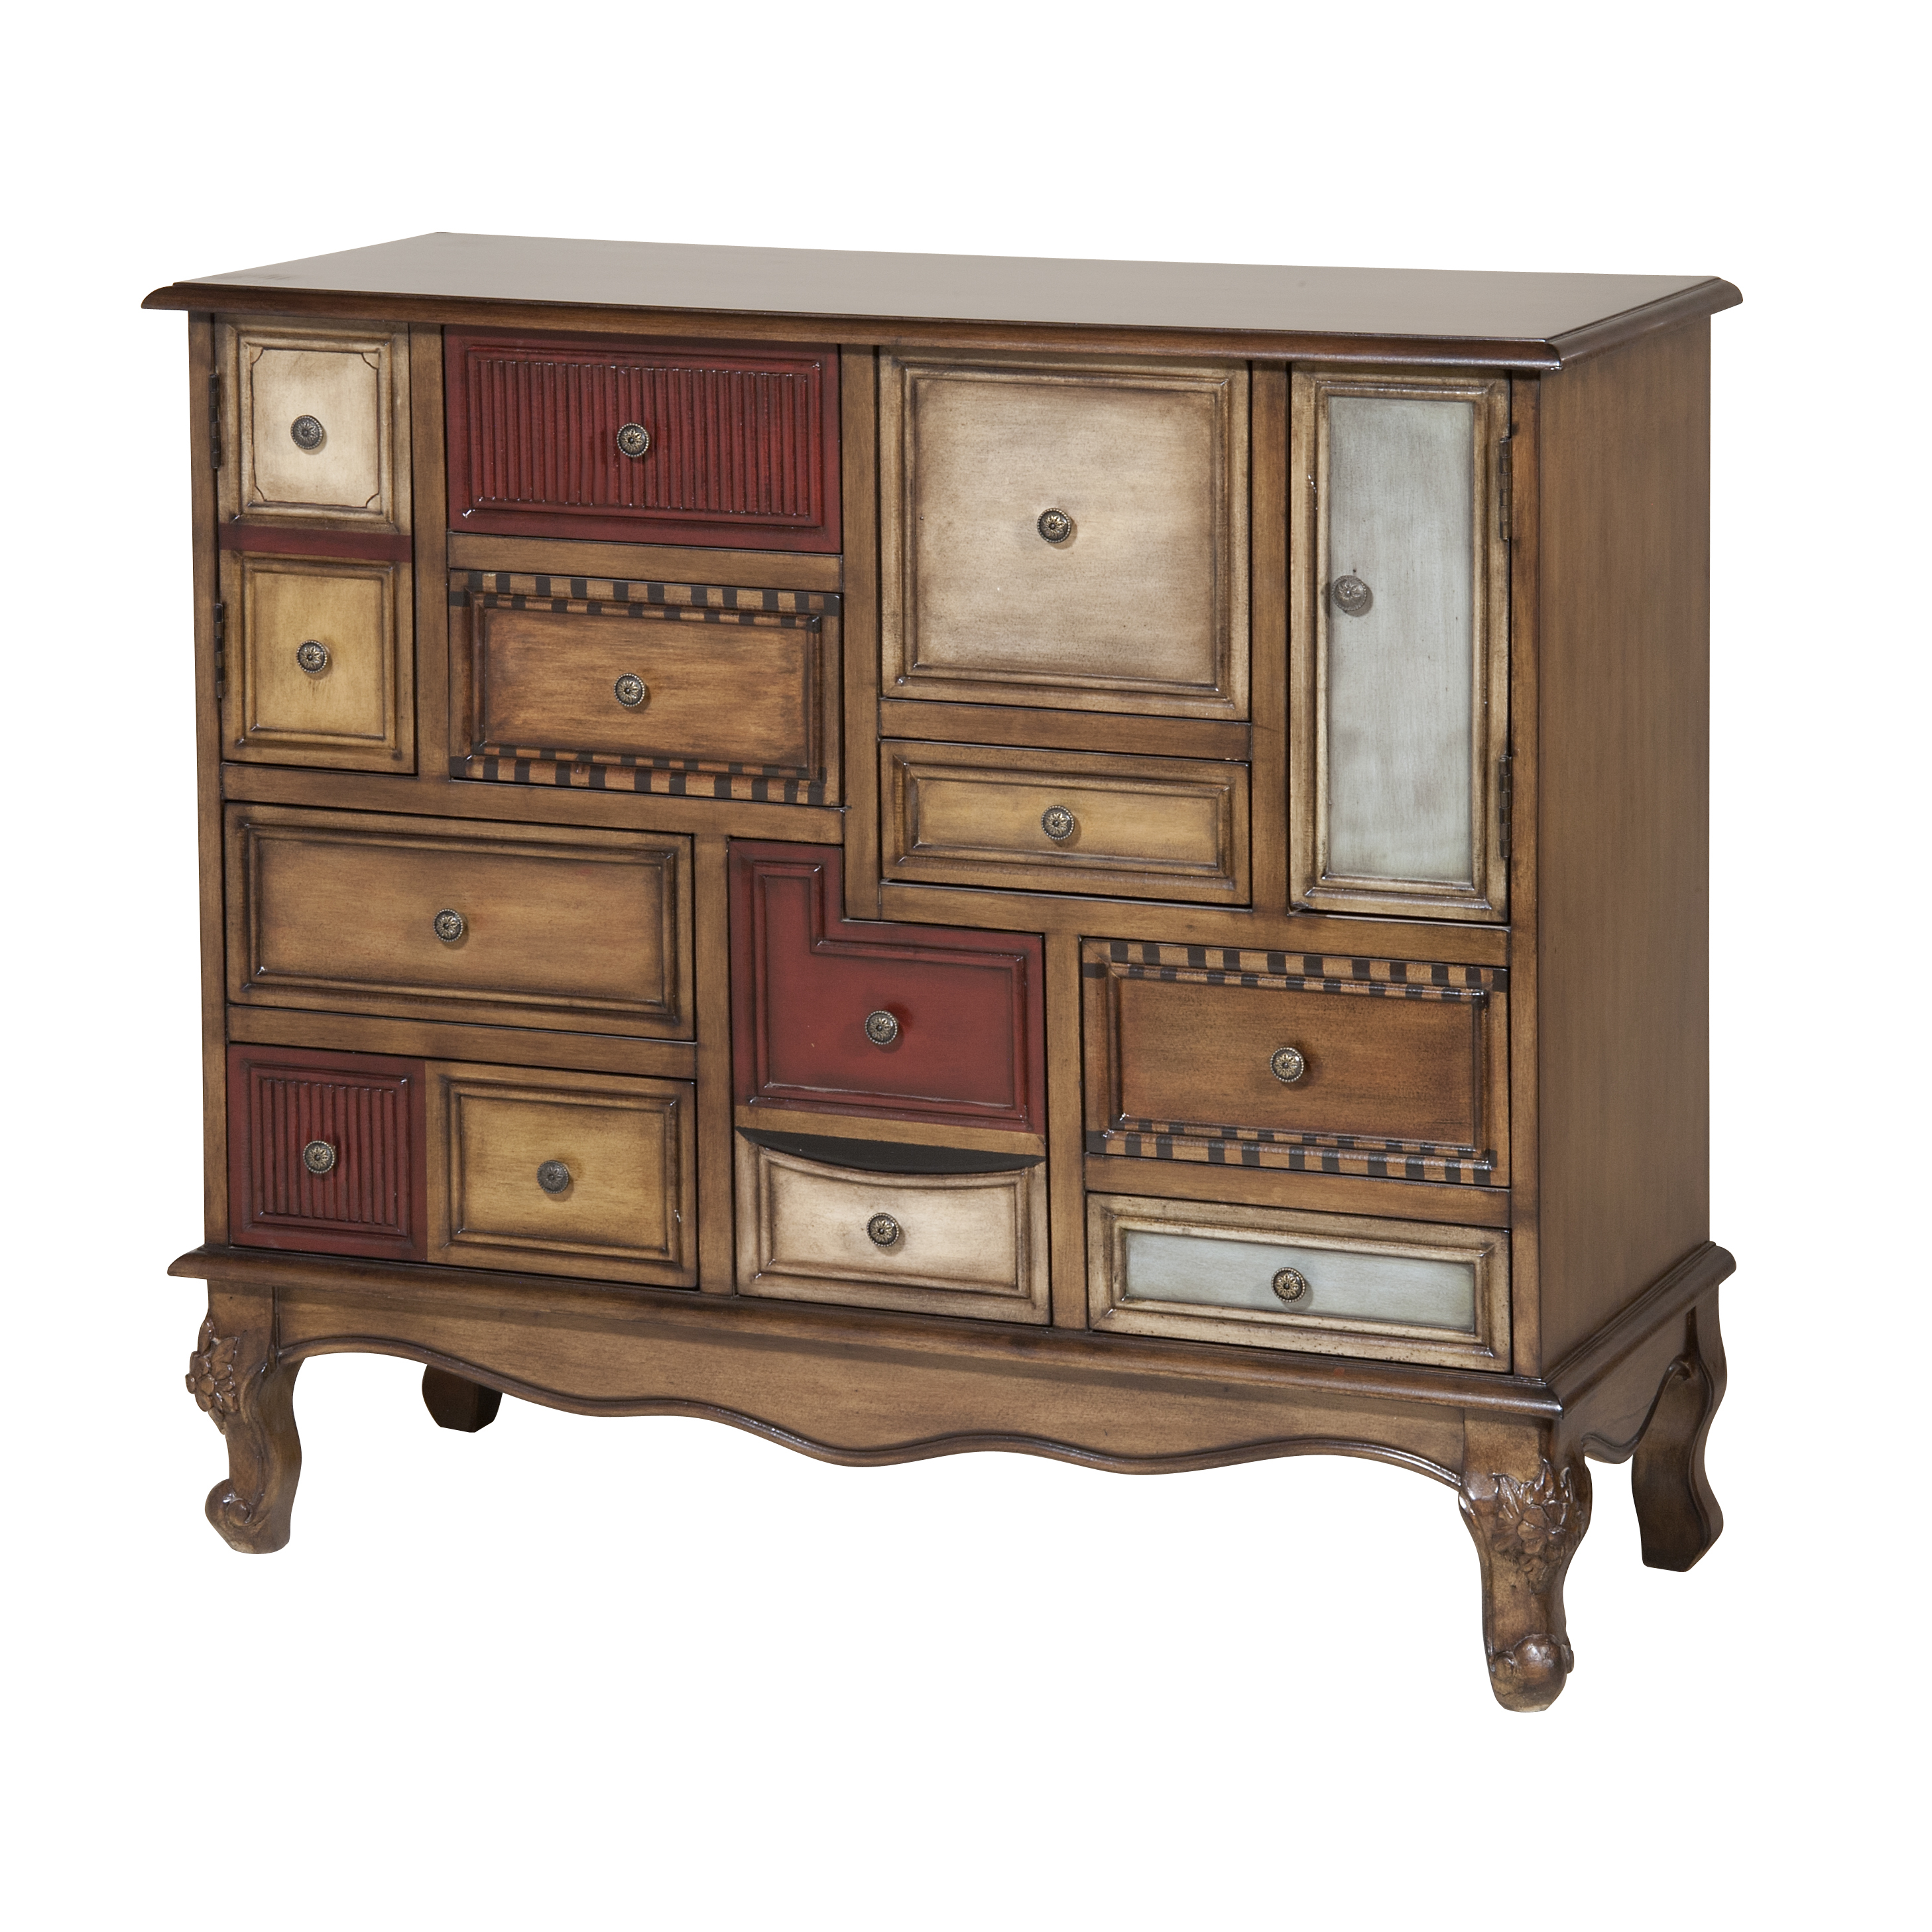 inspirations interior small storage design ideas with accent chest mirrored drawers red cabinet hallway chests consoles black decorative cupboards doors white narrow table wood